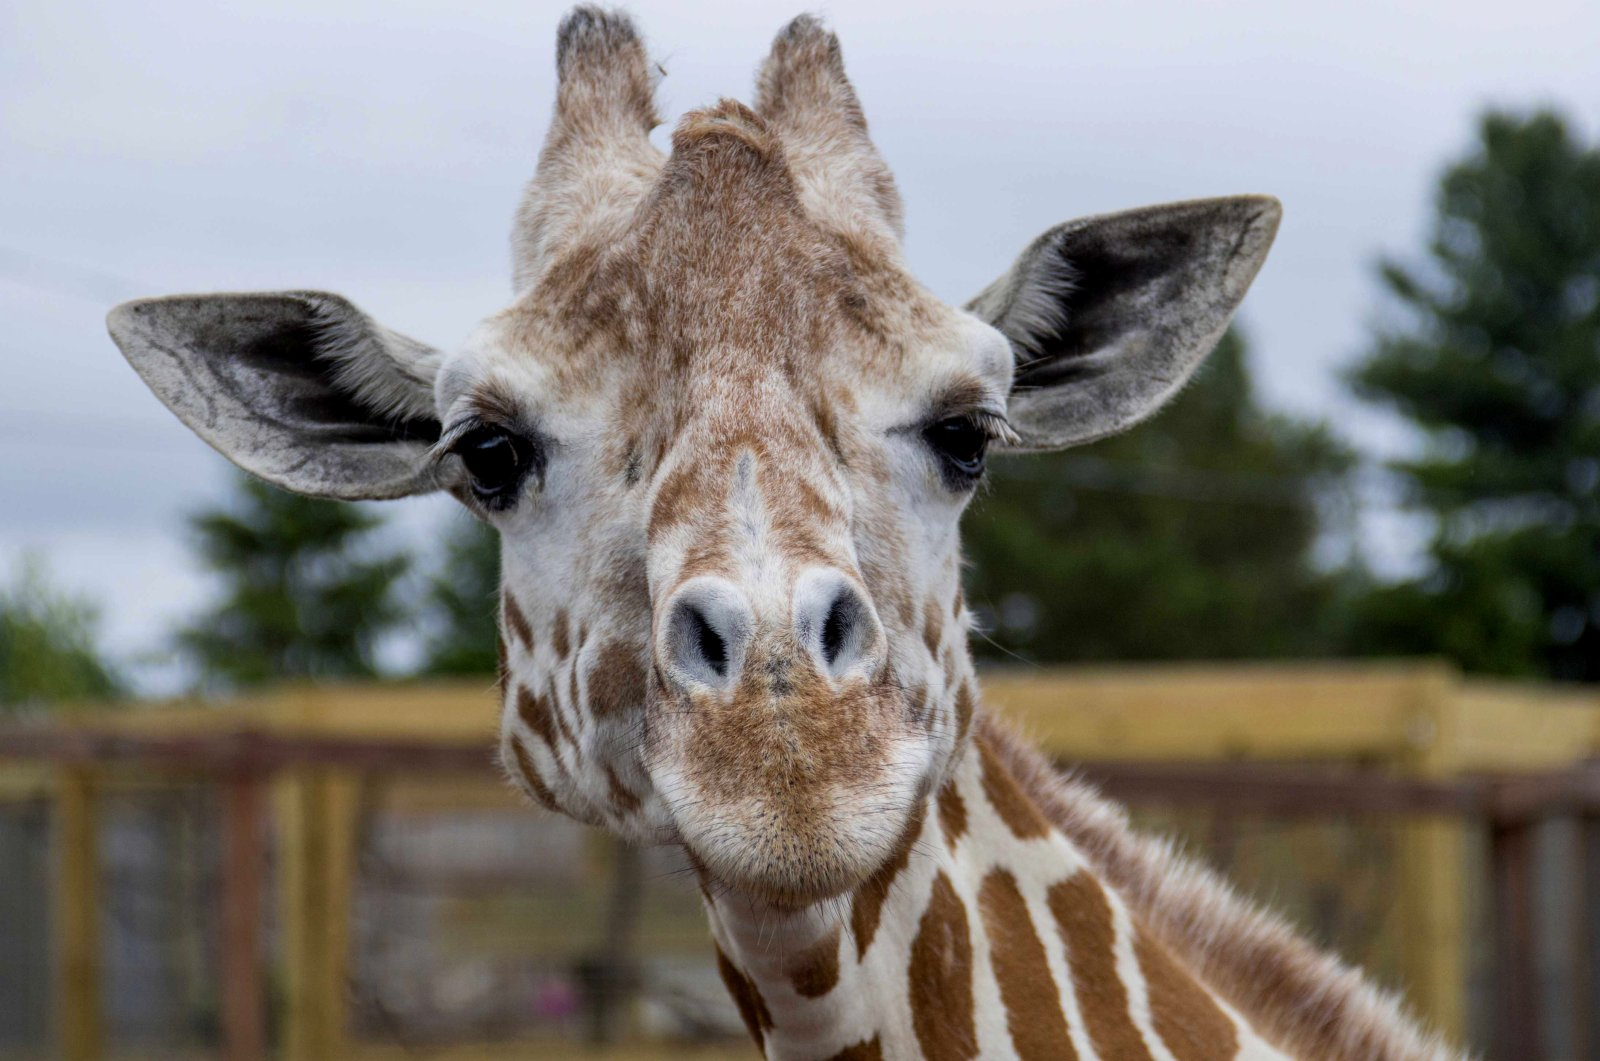 April at Animal Adventure Park in Harpursville, New York, U.S., in an undated photo provided by the zoo on June 3, 2018. (AP Photo)